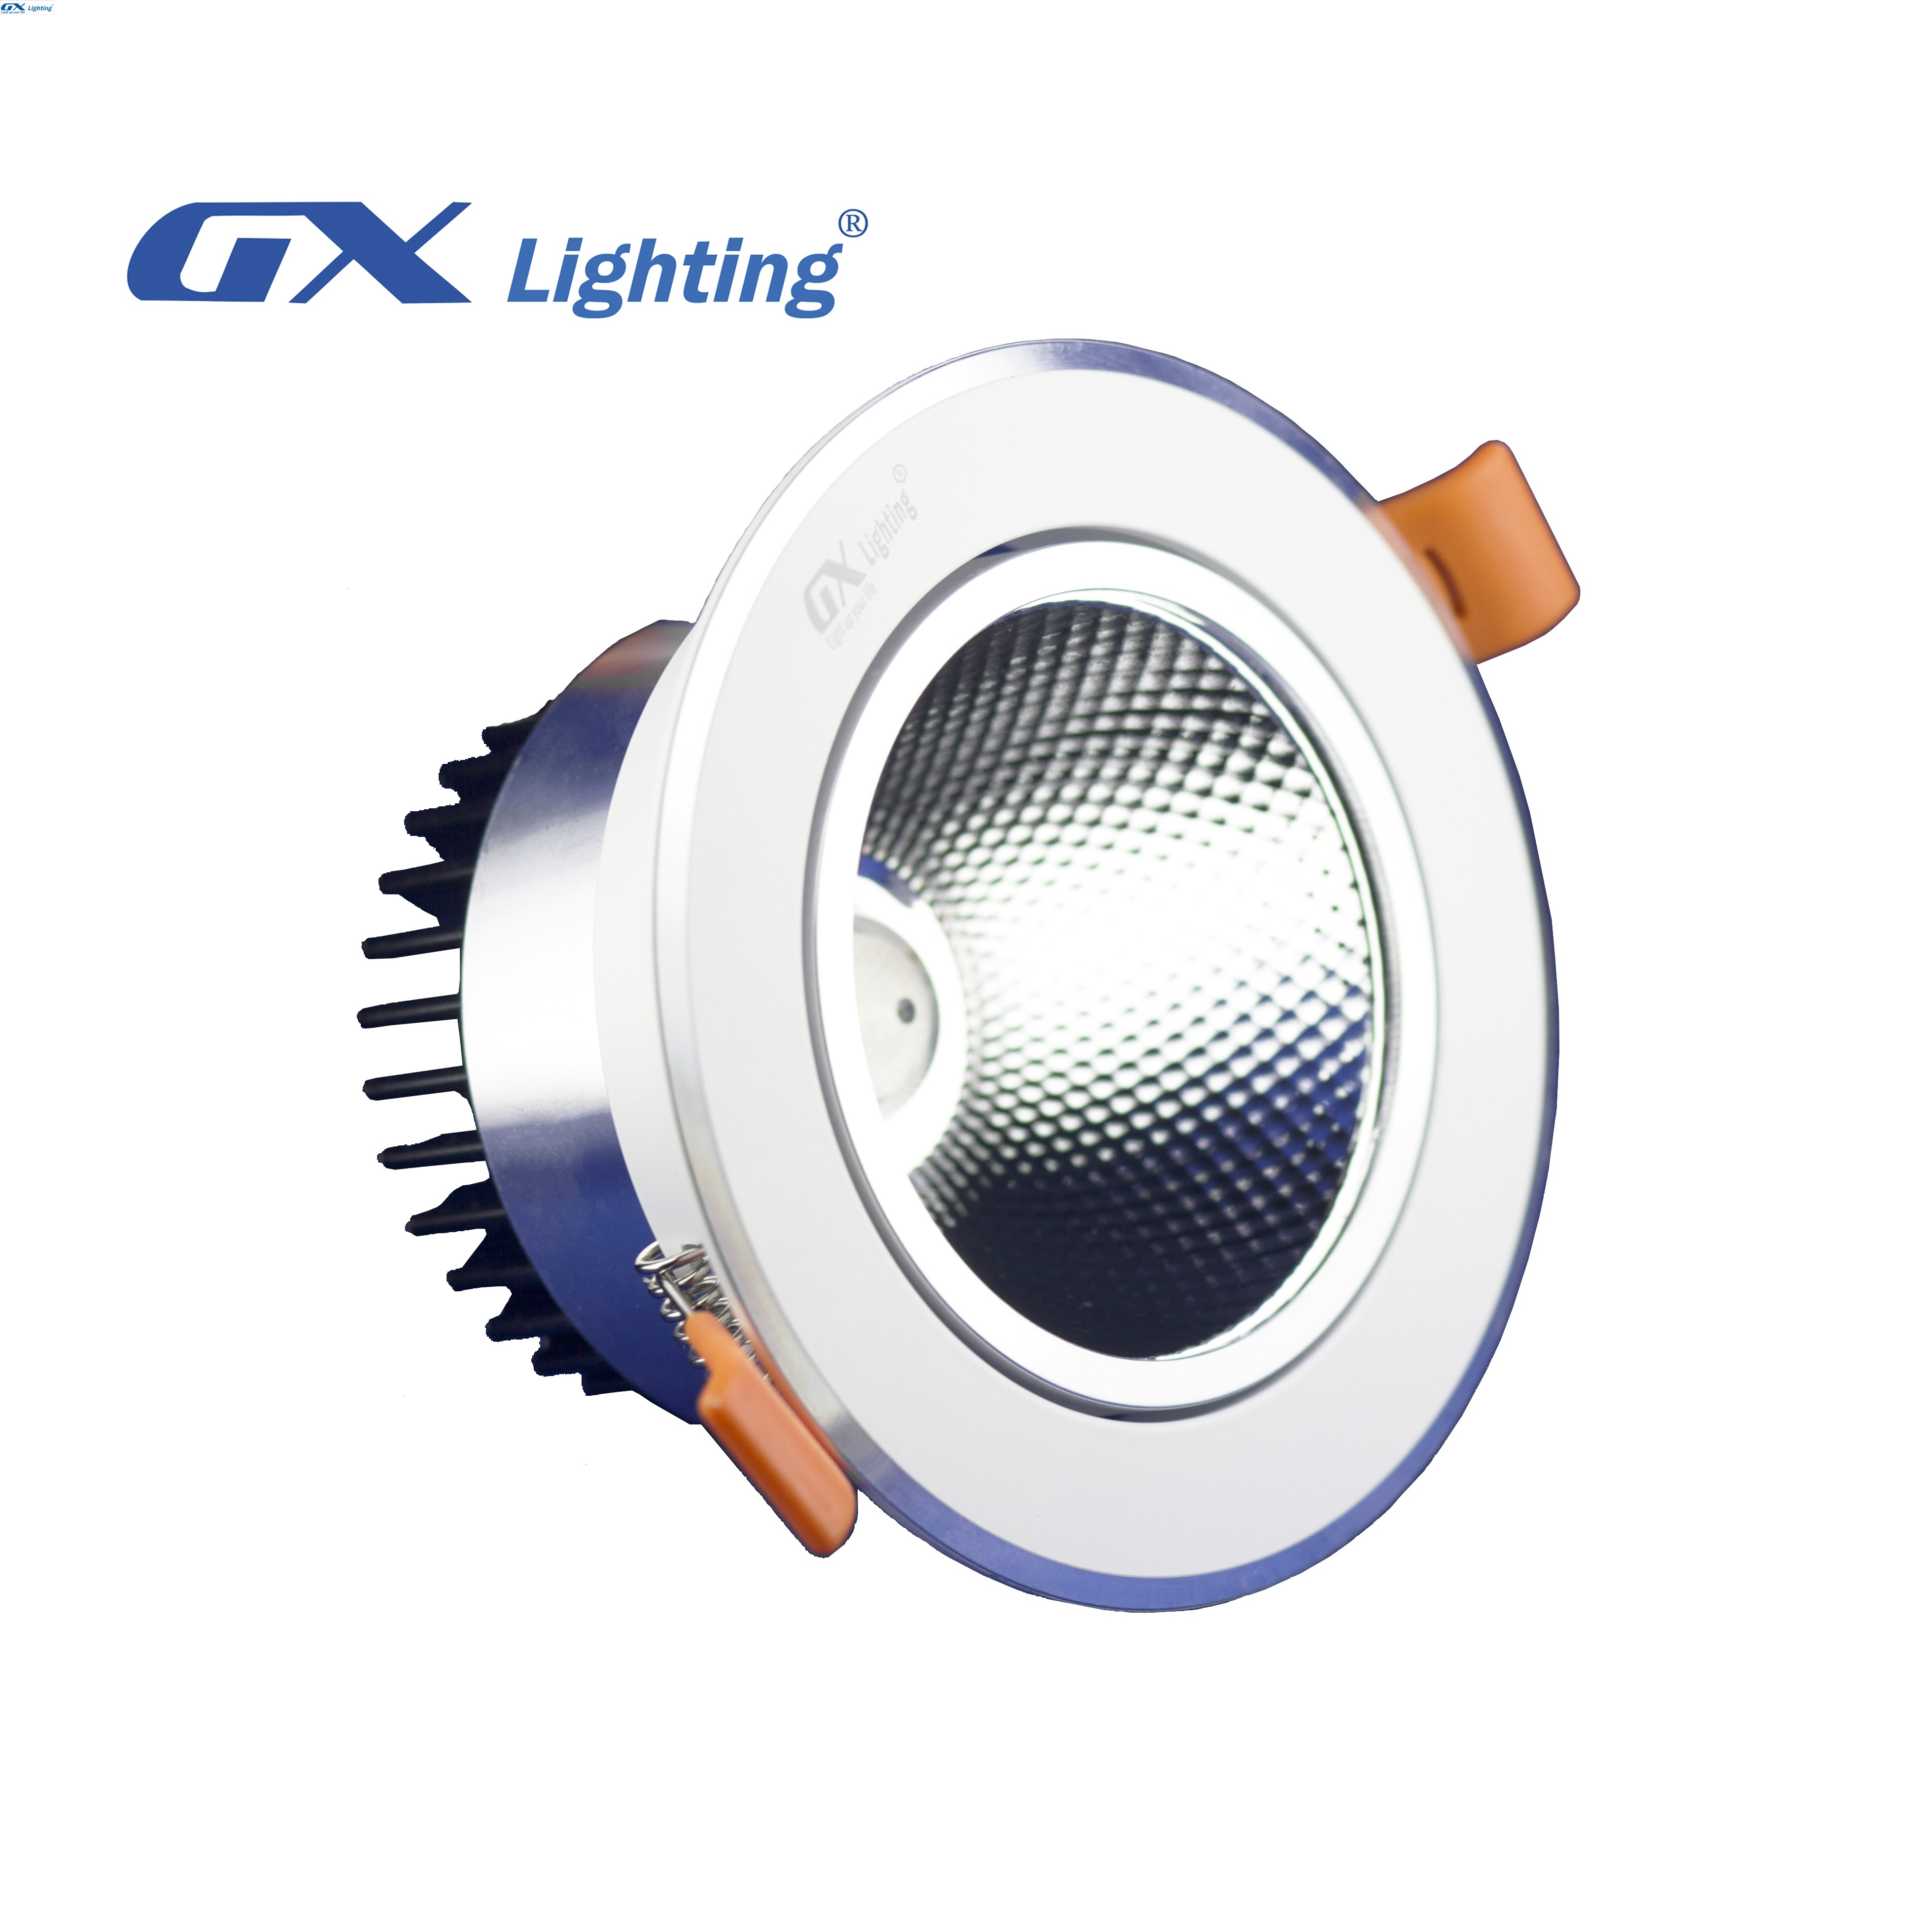 den-led-am-tran-gx-lighting-thd-1509-1b